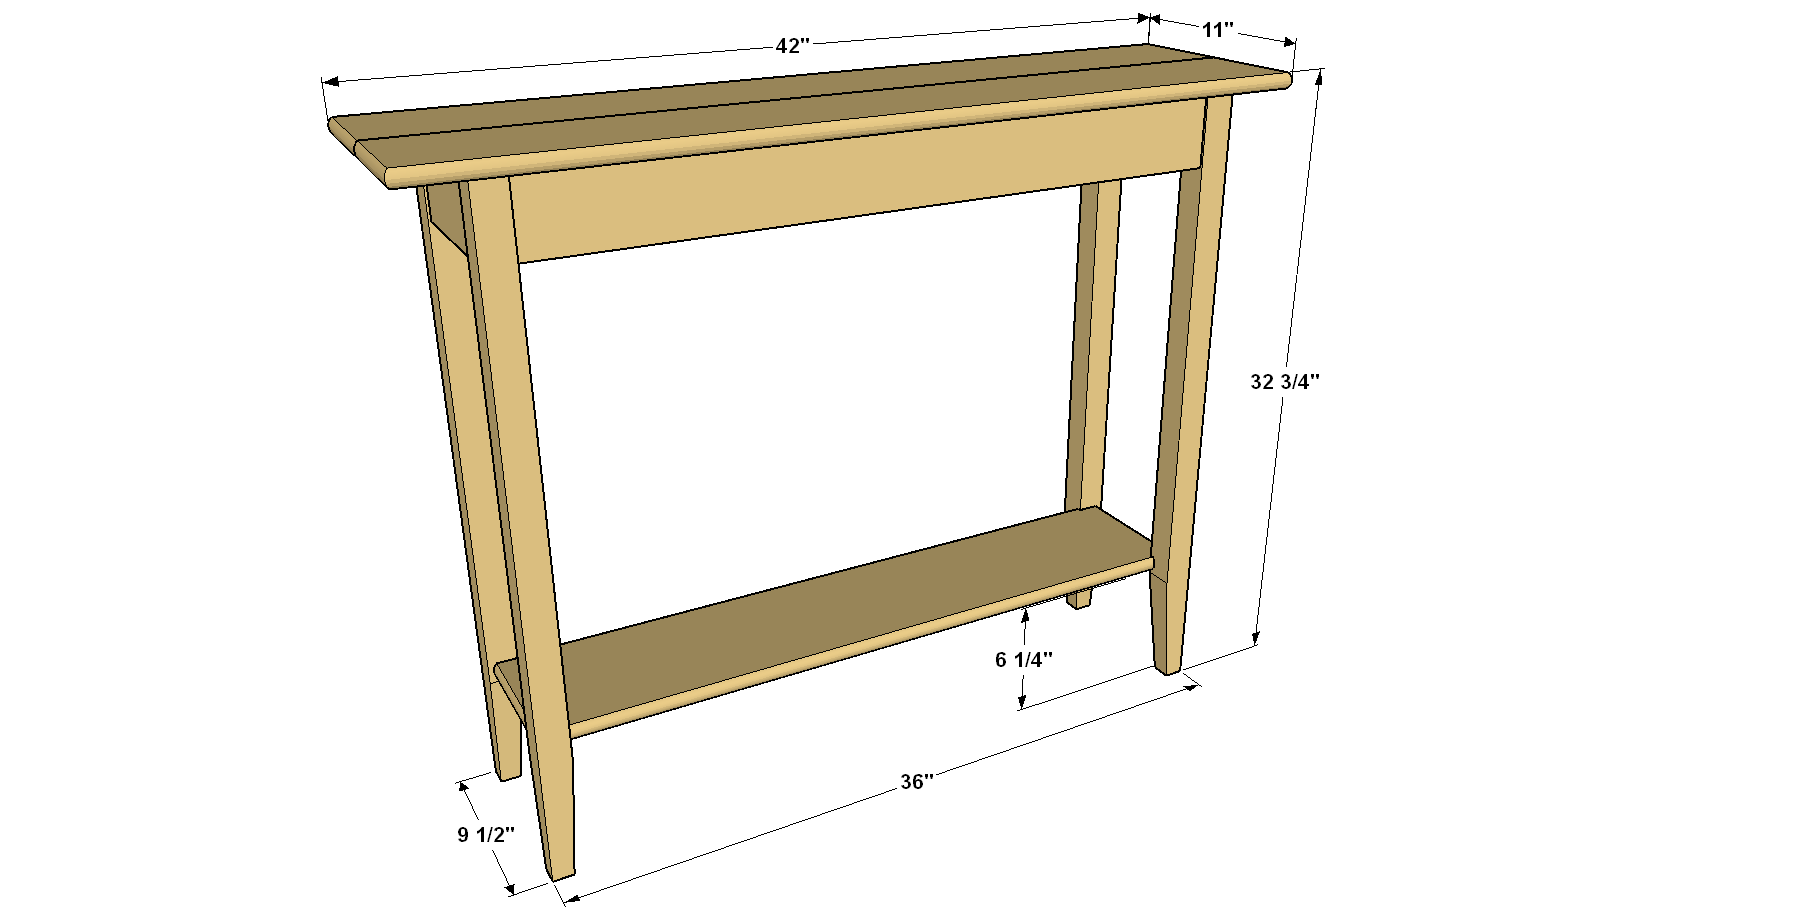 console-table-overall-with-dimensions